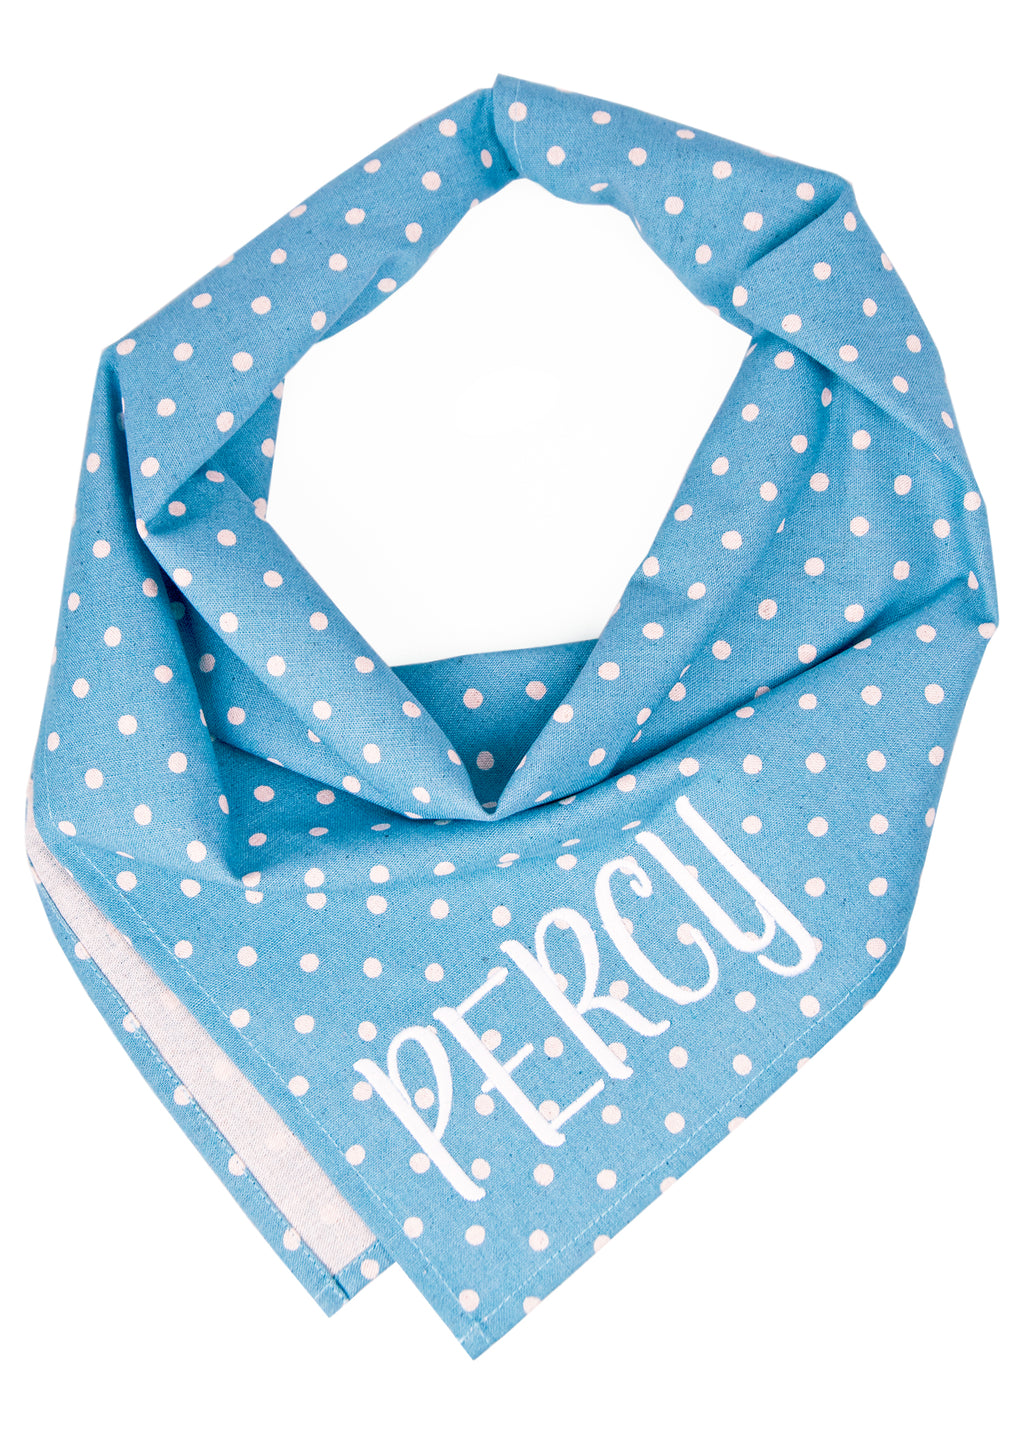 Ivory Dot on Dusty Blue Canvas Dog Bandana